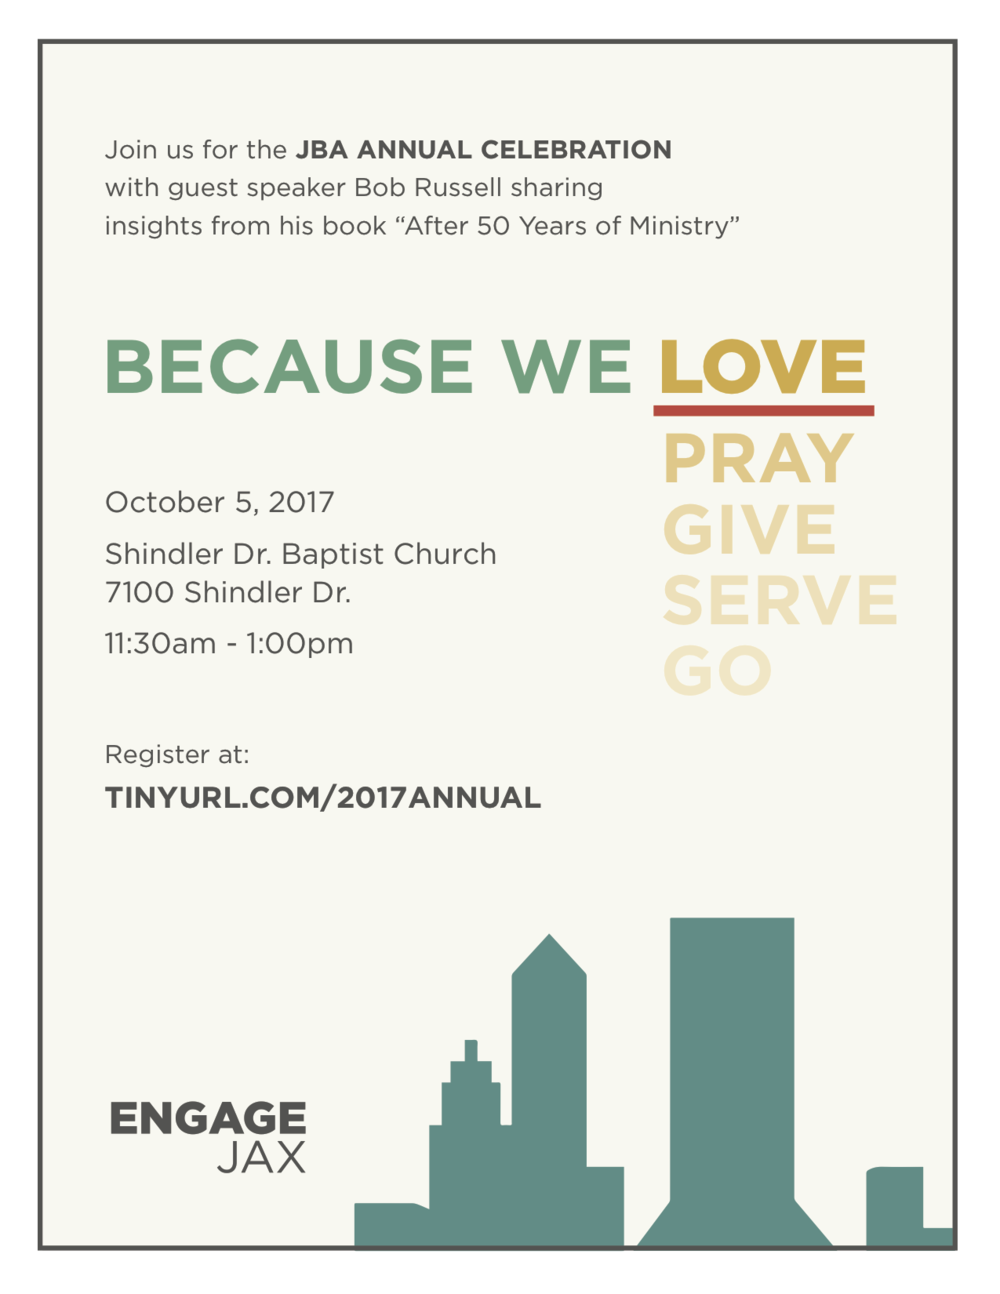 Delicious food, amazing speaker and great fellowship...you don't want to miss this!! Register here:  tinyurl.com/2017Annual